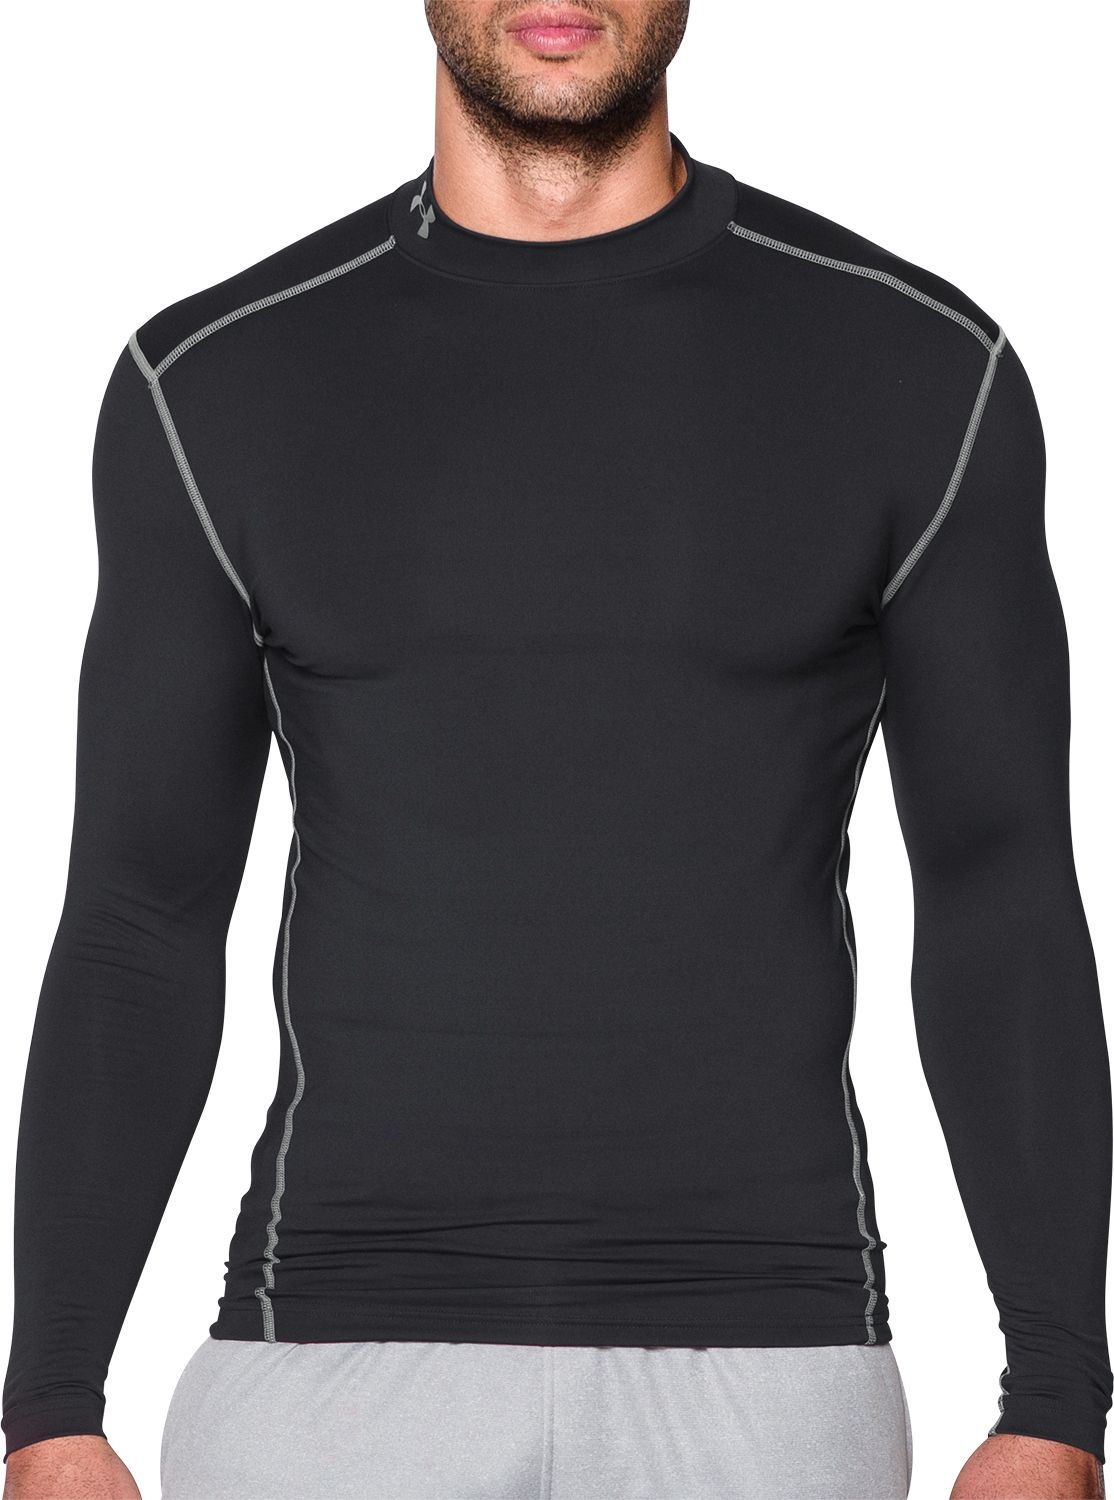 compression shirt noimagefound ??? FFBTULU